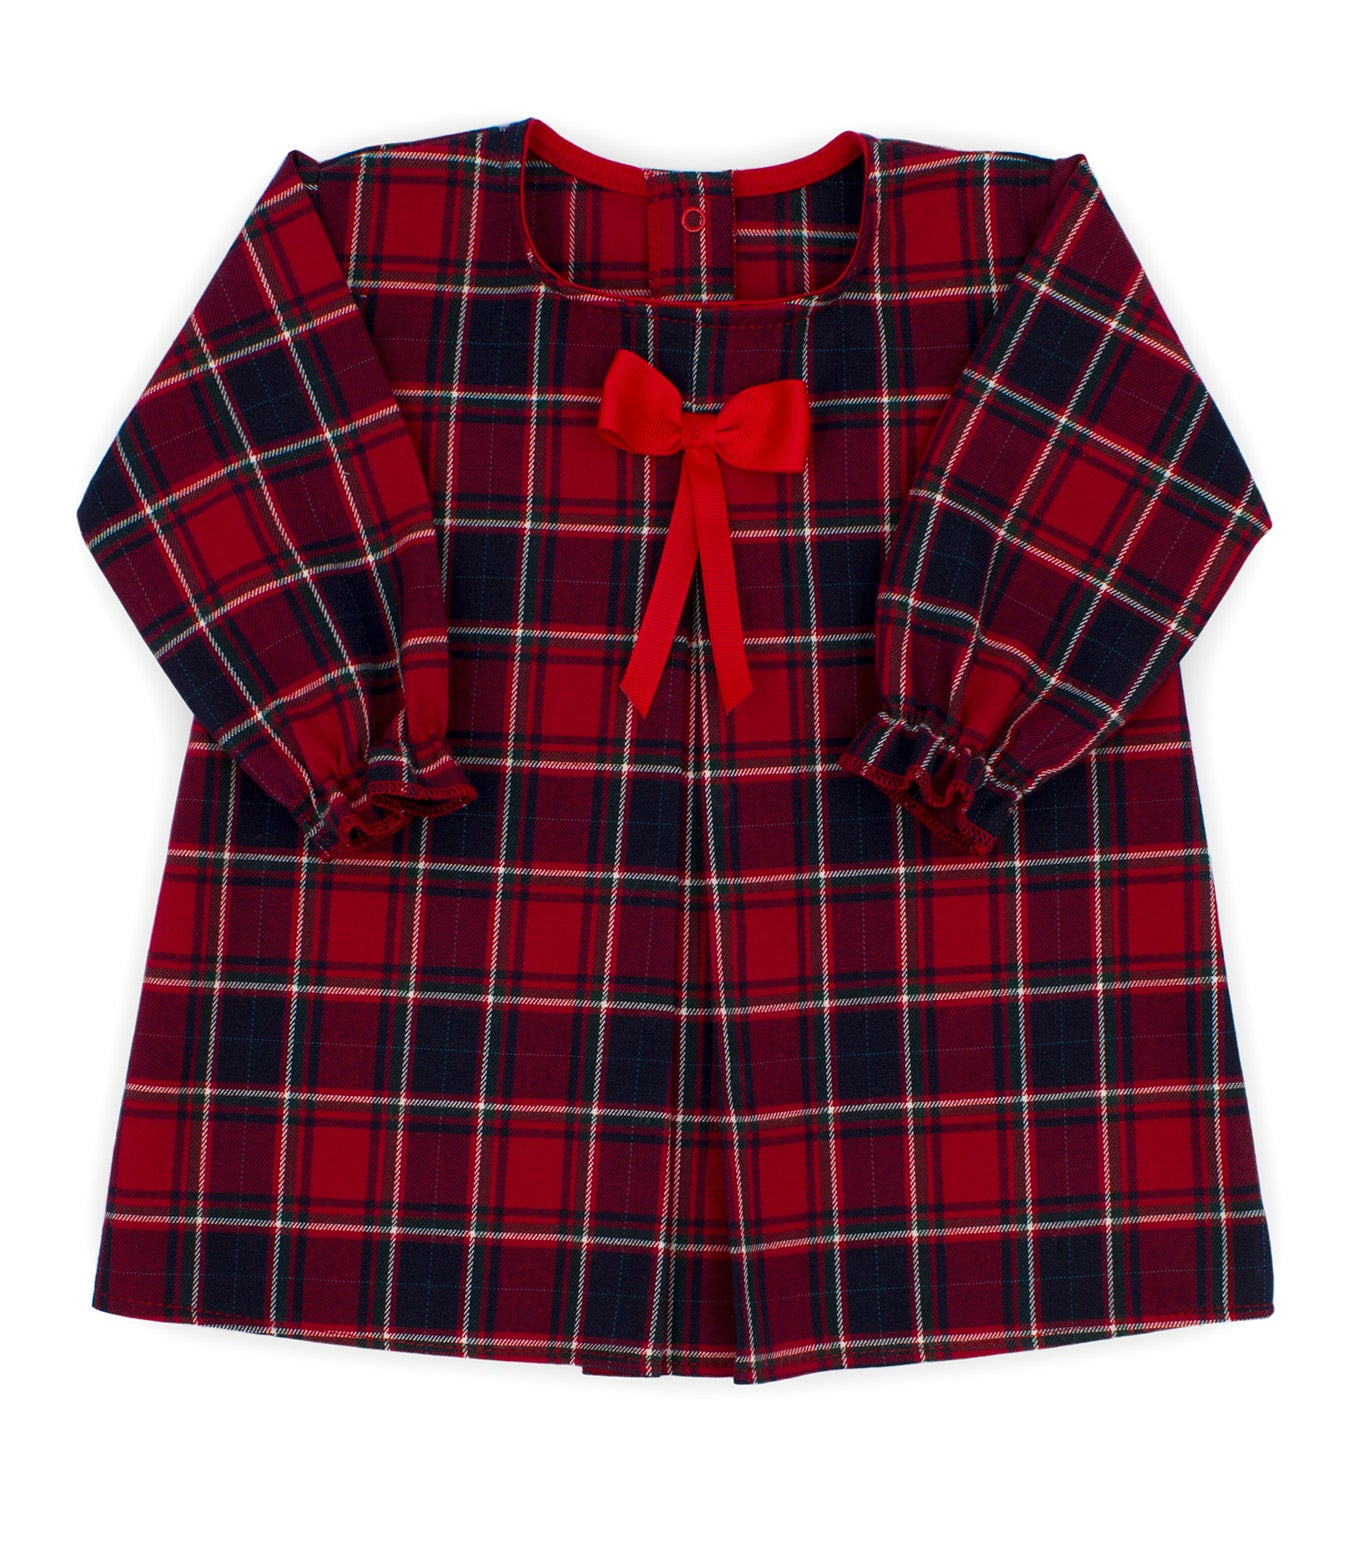 Rapife AW20 Tartan Bow Dress